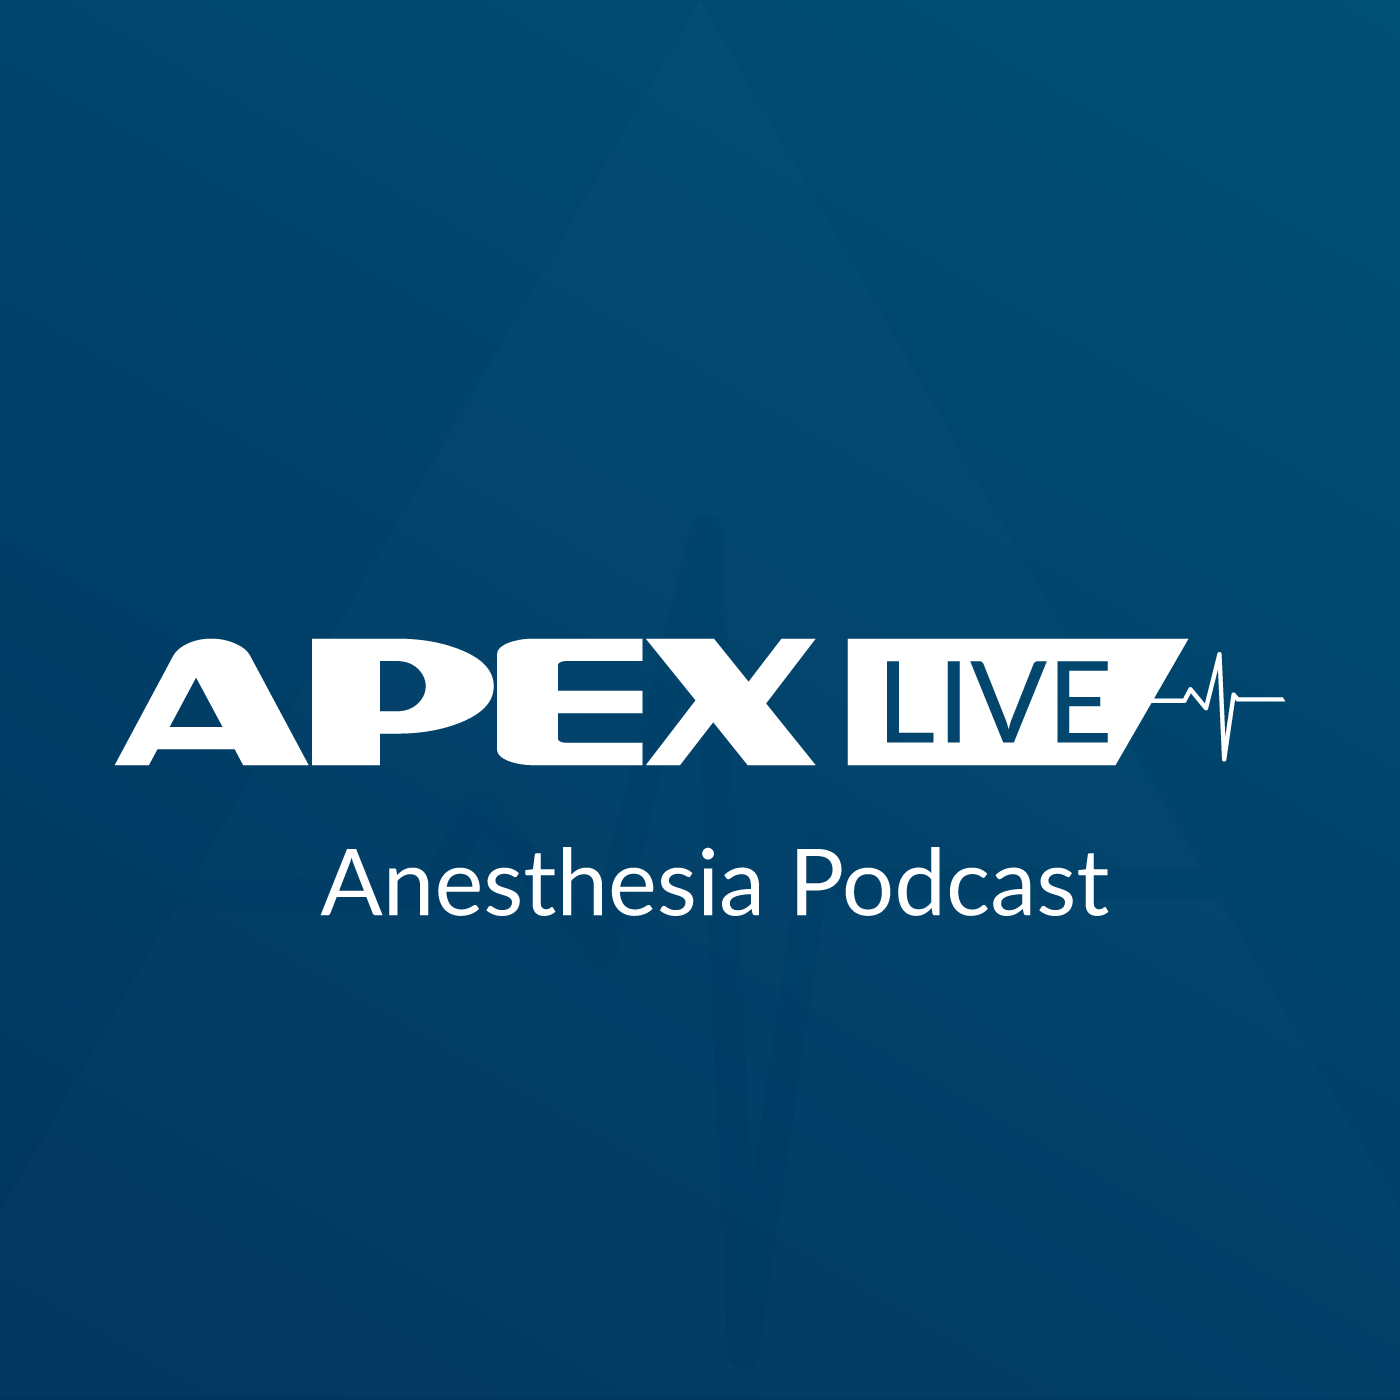 Episode 27: Vasopressors for Hypotension During Anesthesia – Should We Be Less Pushy?